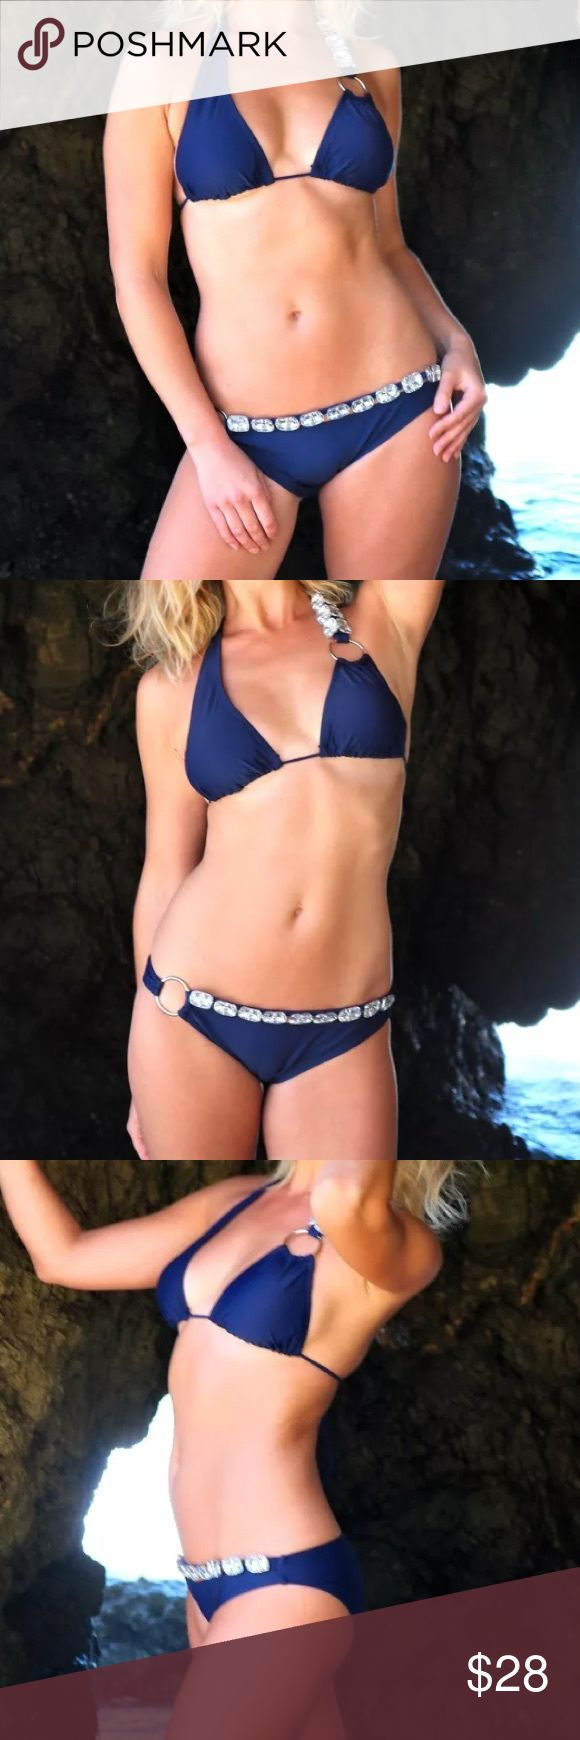 "Push up bikinis cute bikinis blue bikinis These are very unique and sexy push up bikini sets. The bikini set is navy blue in color, and the shoulder strap as well as the waist band are decorated with large crystals.   S / M (US size: 4 - 8)  Bust: 34"" - 35"" Waist: 26"" - 27"" Hip: 36"" - 39""  L (US size: 10 - 12)  Bust: 36.5"" - 38"" Waist: 28"" - 29.5"" Hip: 38.5"" - 40""  Follow us on Instagram: www.instagram.com/sassy.cool/  SHIPPING  This item is ready to ship within 1-2 business days from the…"